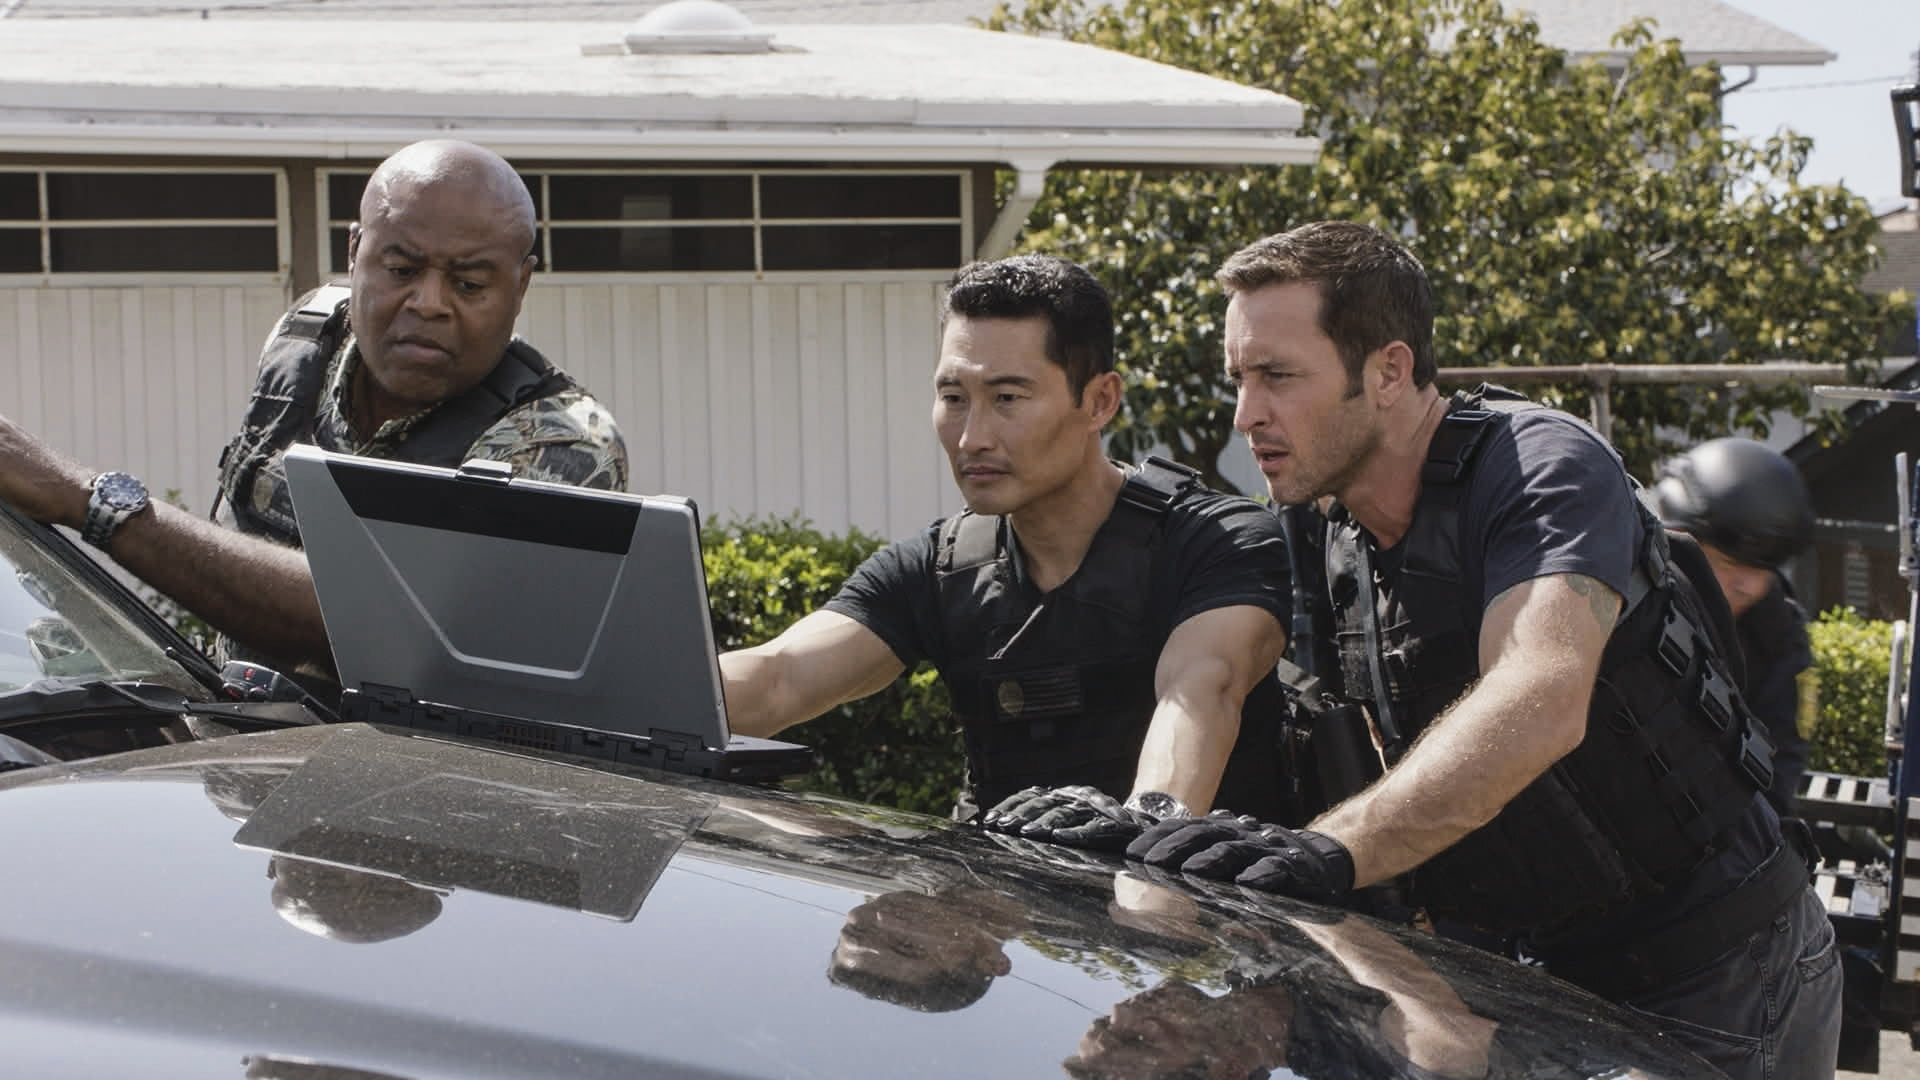 Hawaii Five-0 - Season 7 Episode 20 : Huikau na makau a na lawai'a (The fishhooks of the fishermen become entangled)